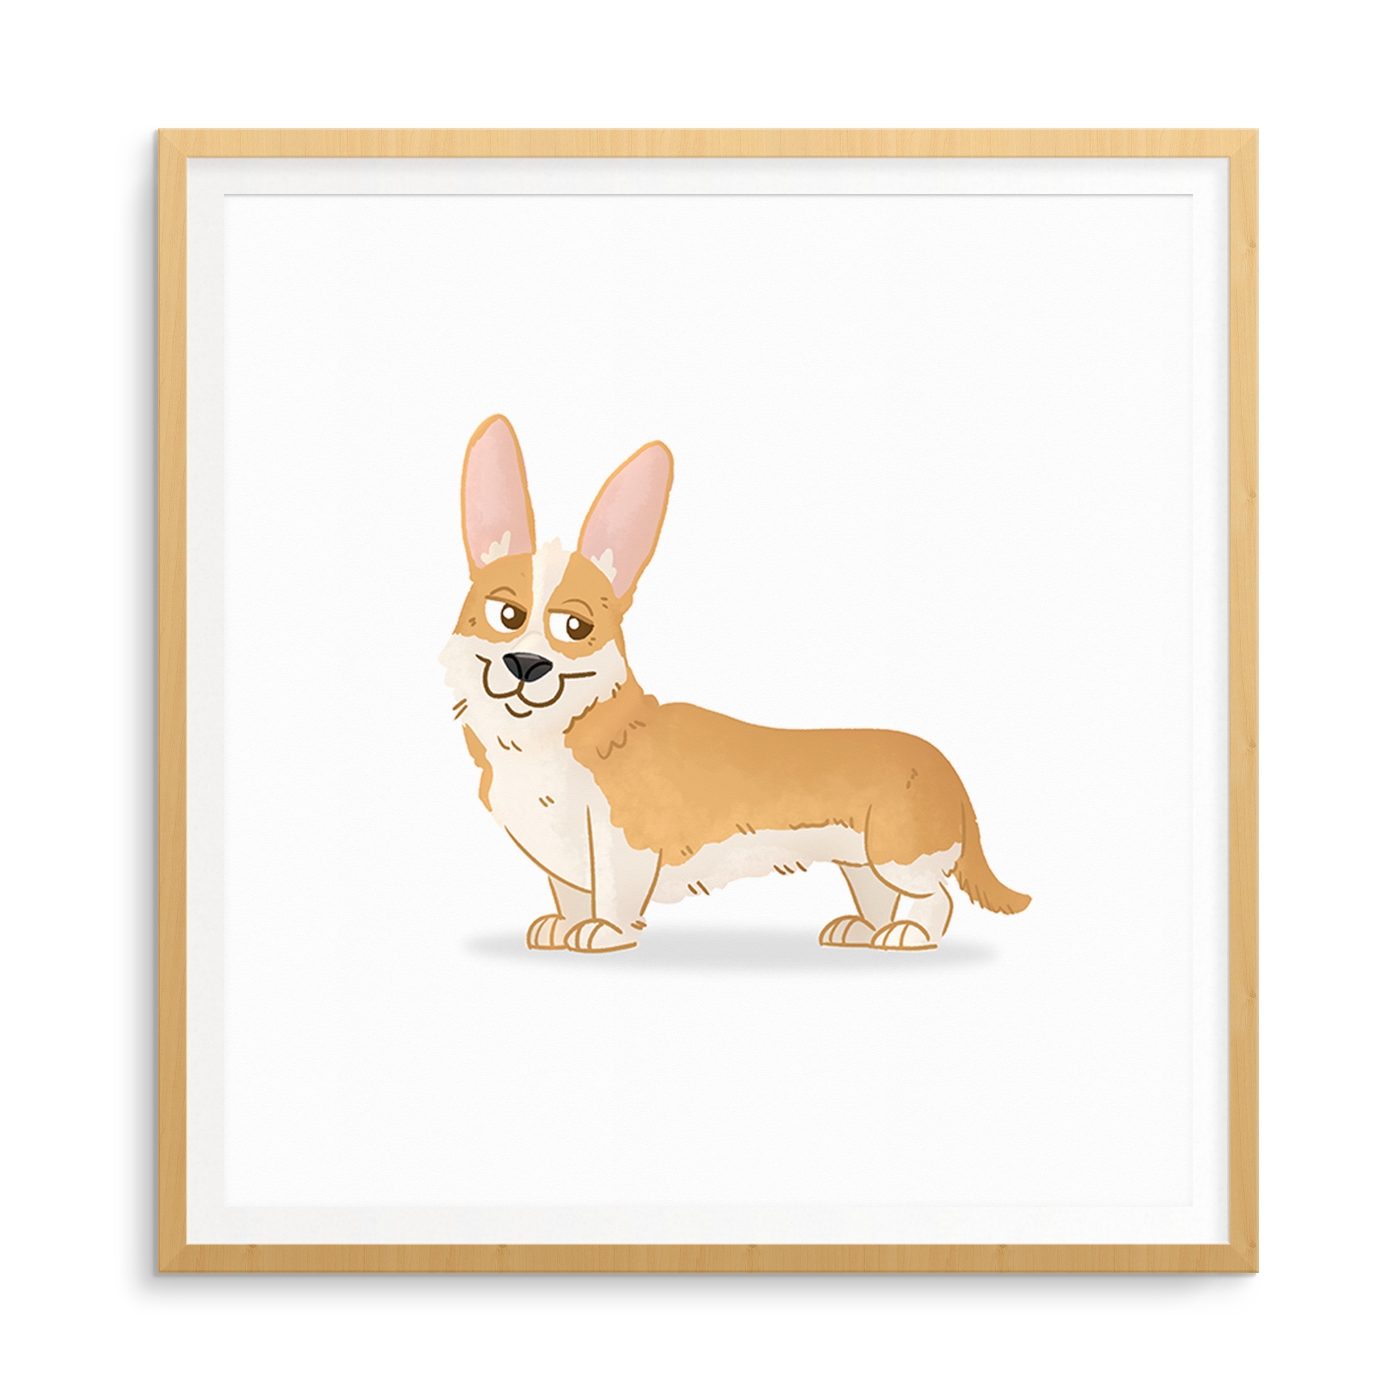 I Will Draw Your Dog